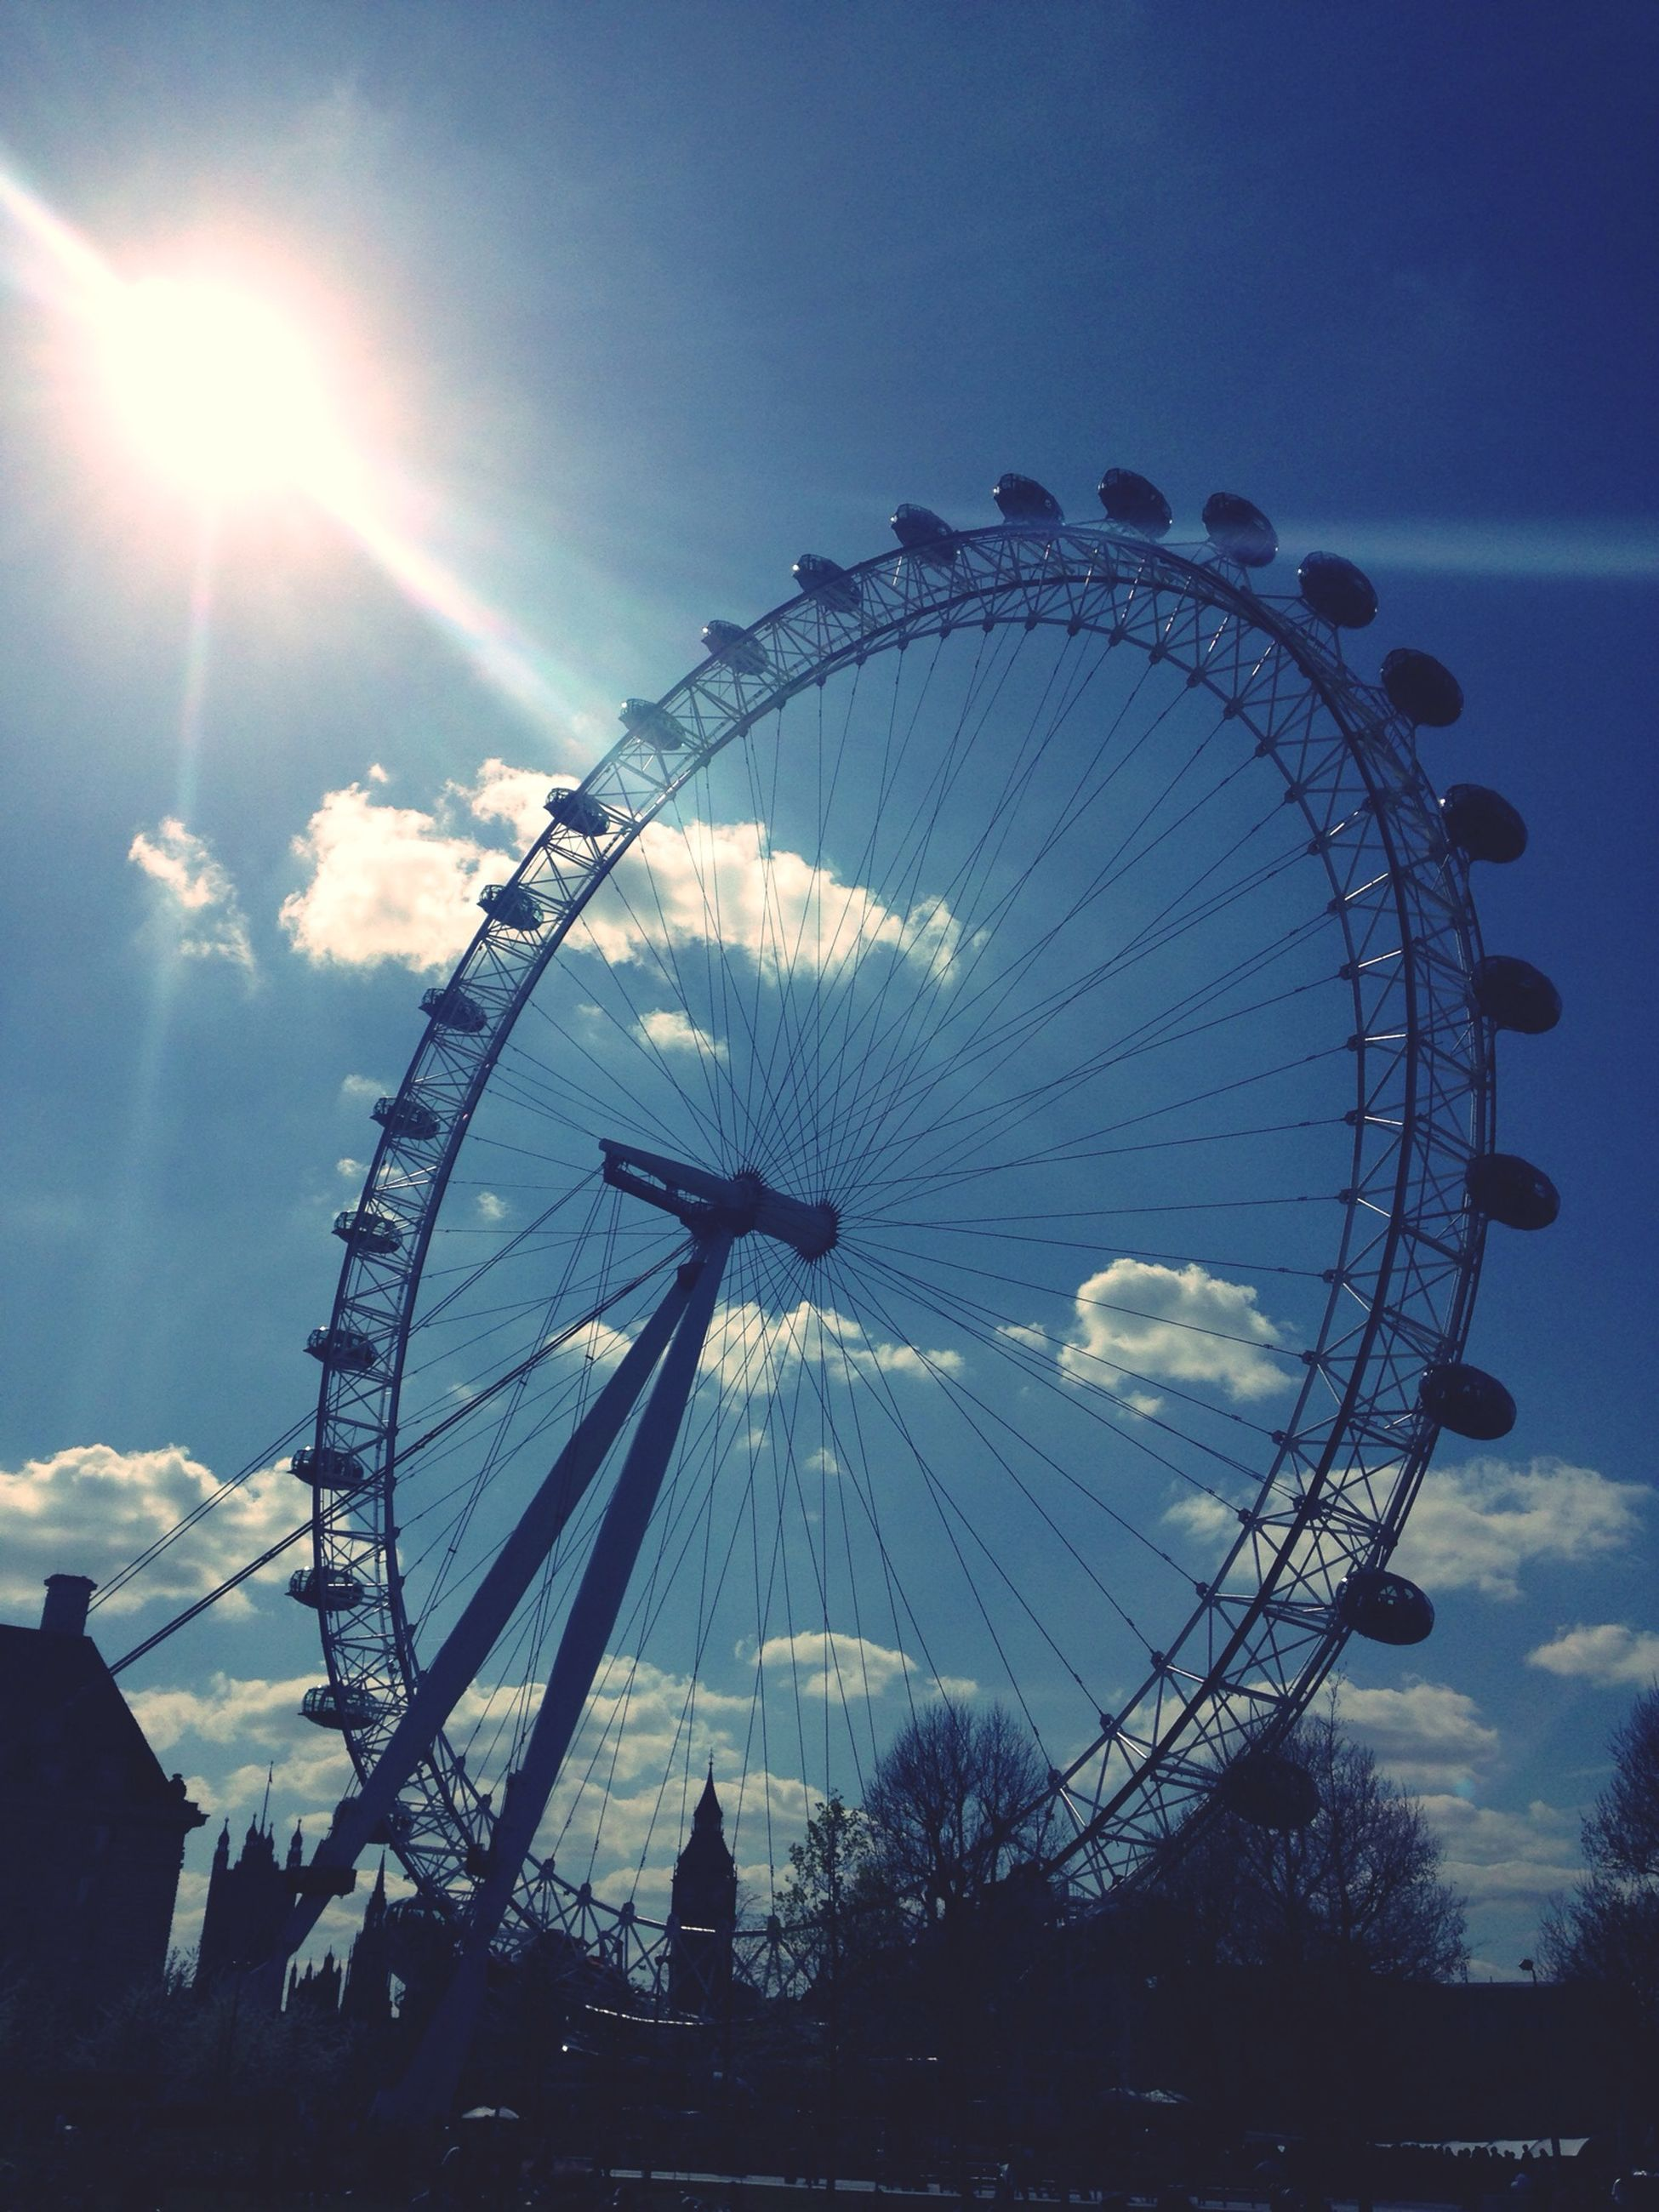 ferris wheel, amusement park ride, amusement park, arts culture and entertainment, sky, low angle view, sun, built structure, architecture, silhouette, cloud - sky, circle, travel destinations, tourism, fun, famous place, travel, sunlight, outdoors, cloud